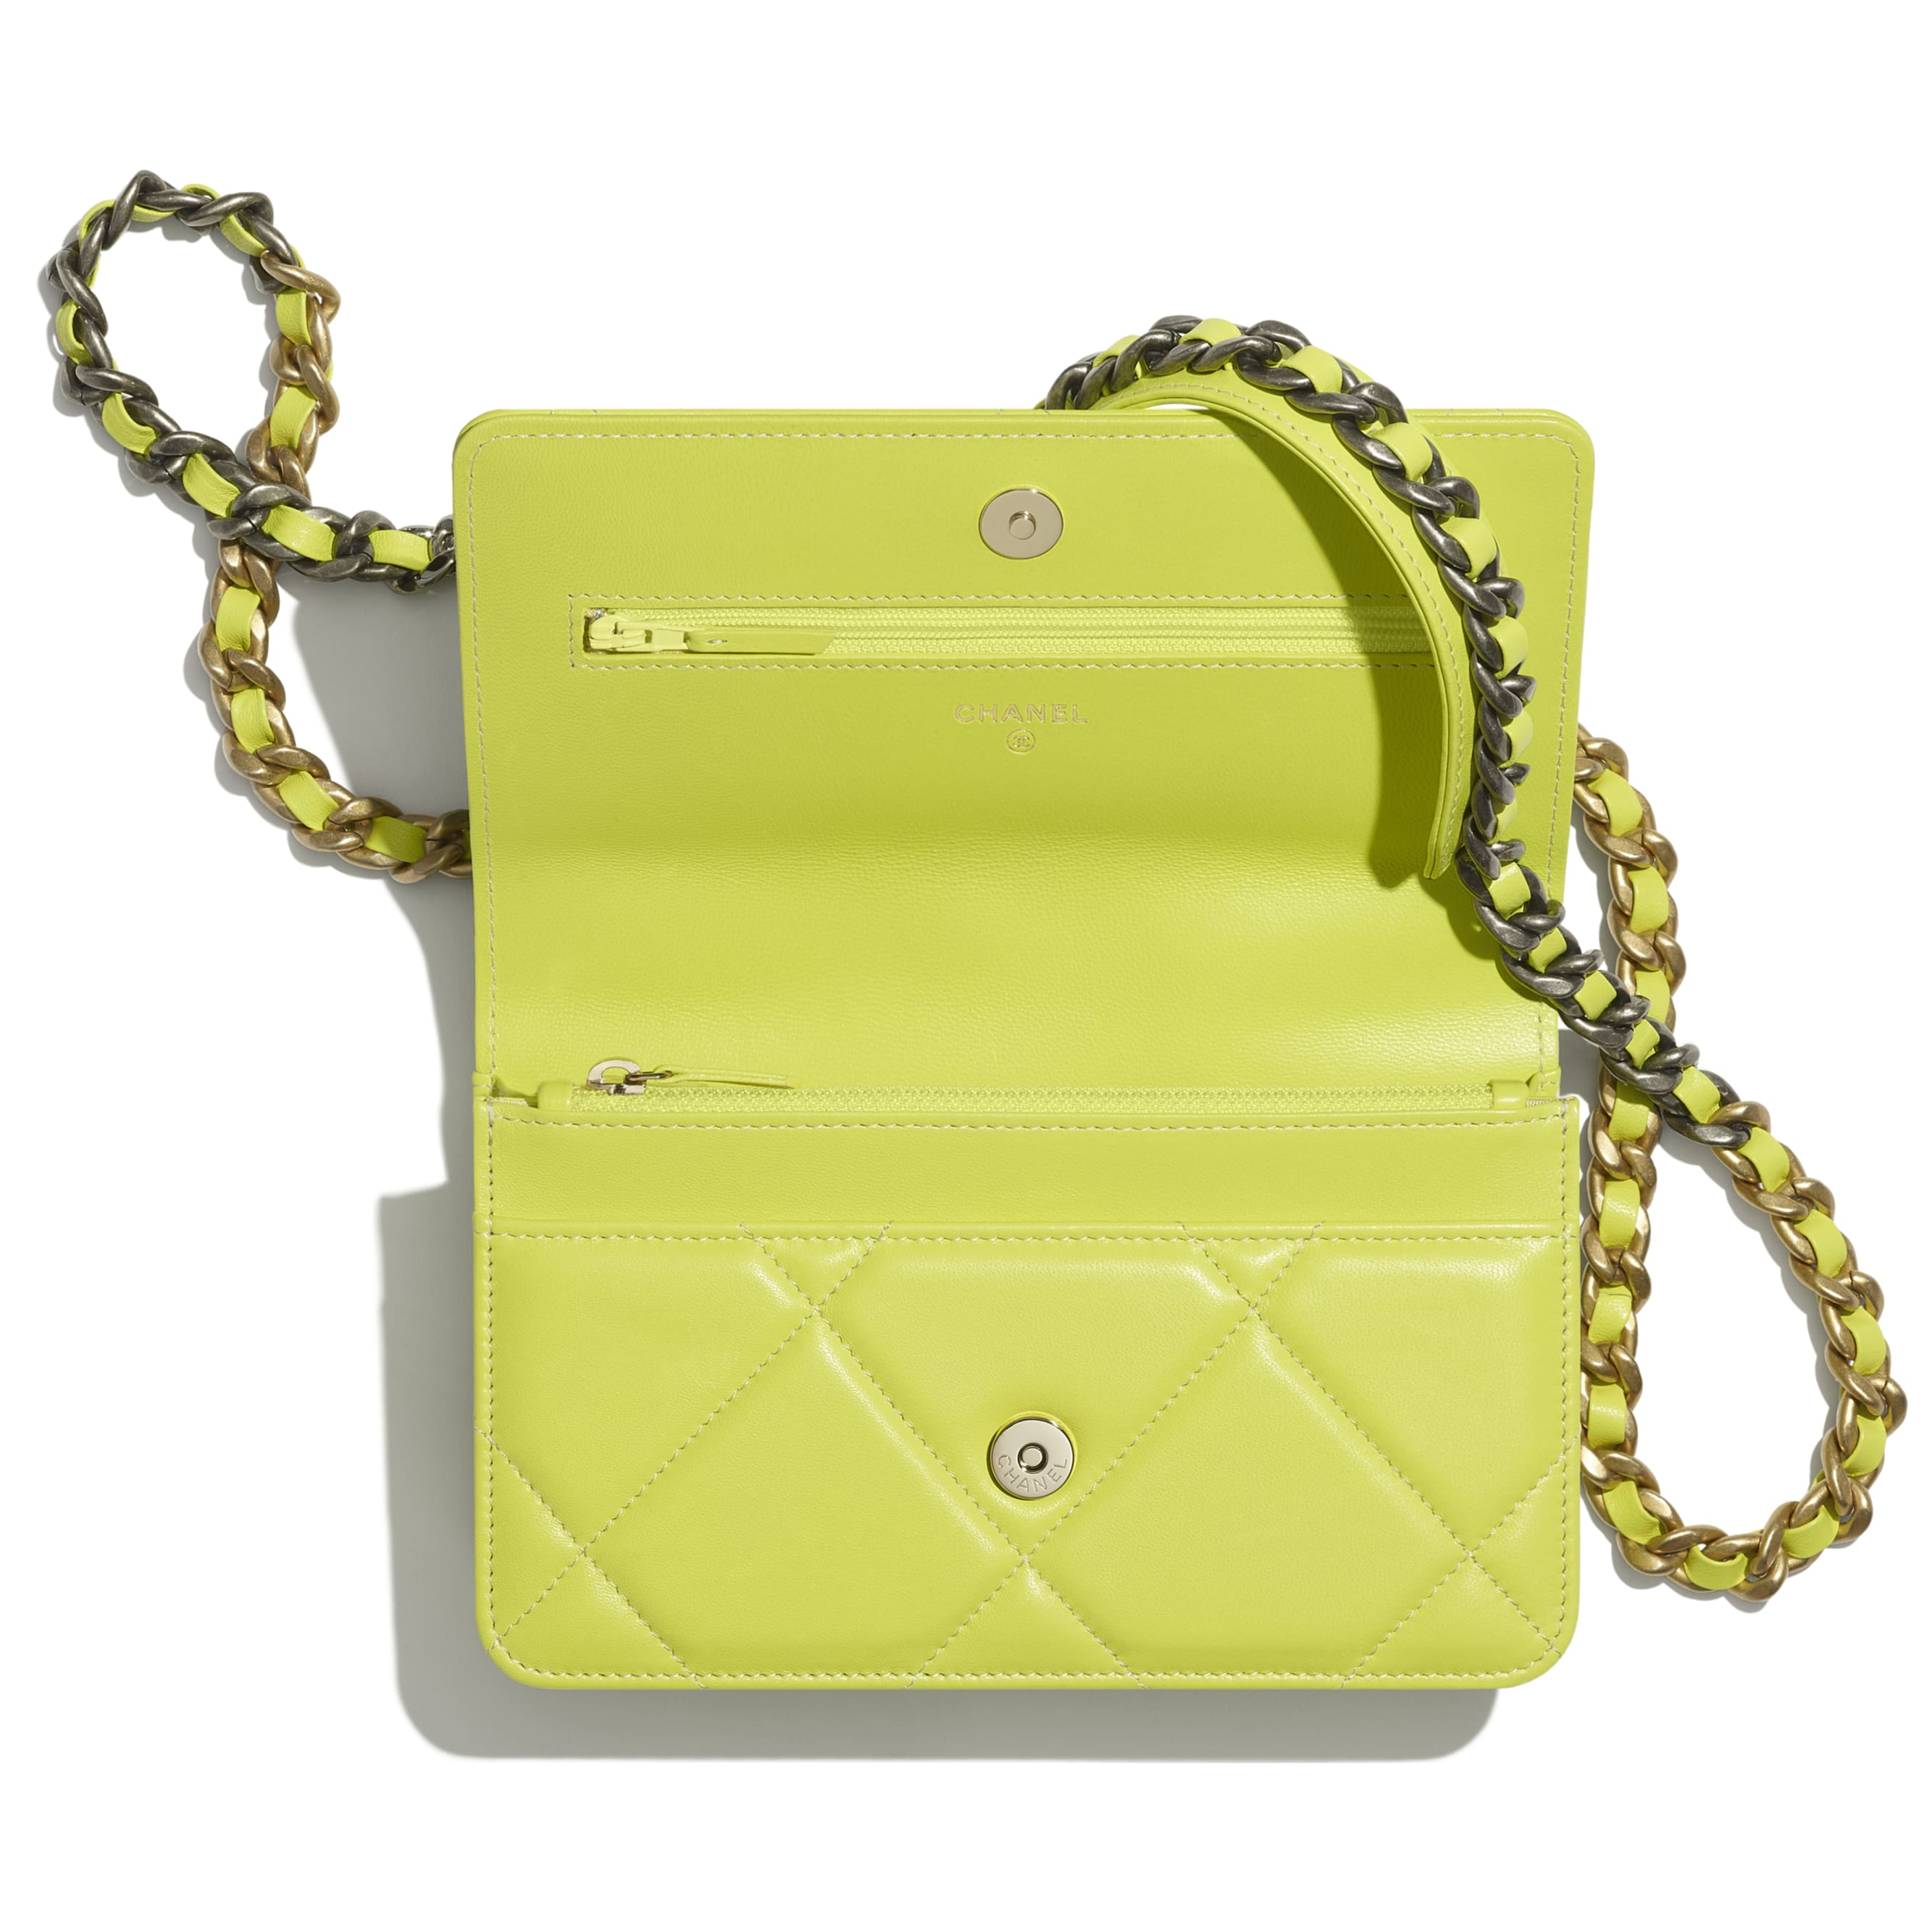 CHANEL 19 Wallet on Chain - Neon Yellow - Shiny Lambskin, Gold-Tone, Silver-Tone & Ruthenium-Finish Metal - CHANEL - Alternative view - see standard sized version